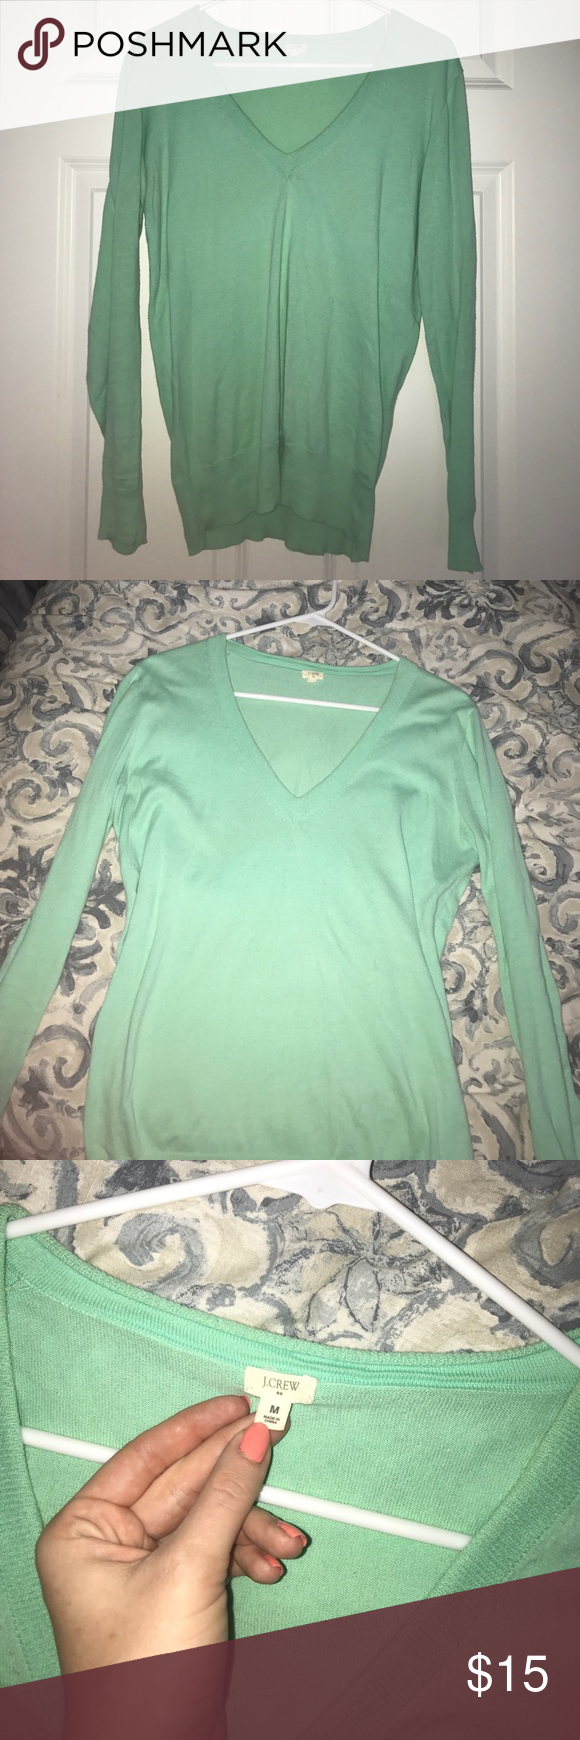 J. Crew Pastel Green Sweater Gently used Pastel Green V Neck sweater from j. Crew. Size Medium, the material is a thin cotton. Perfect spring sweater! In excellent condition! J. Crew Sweaters V-Necks